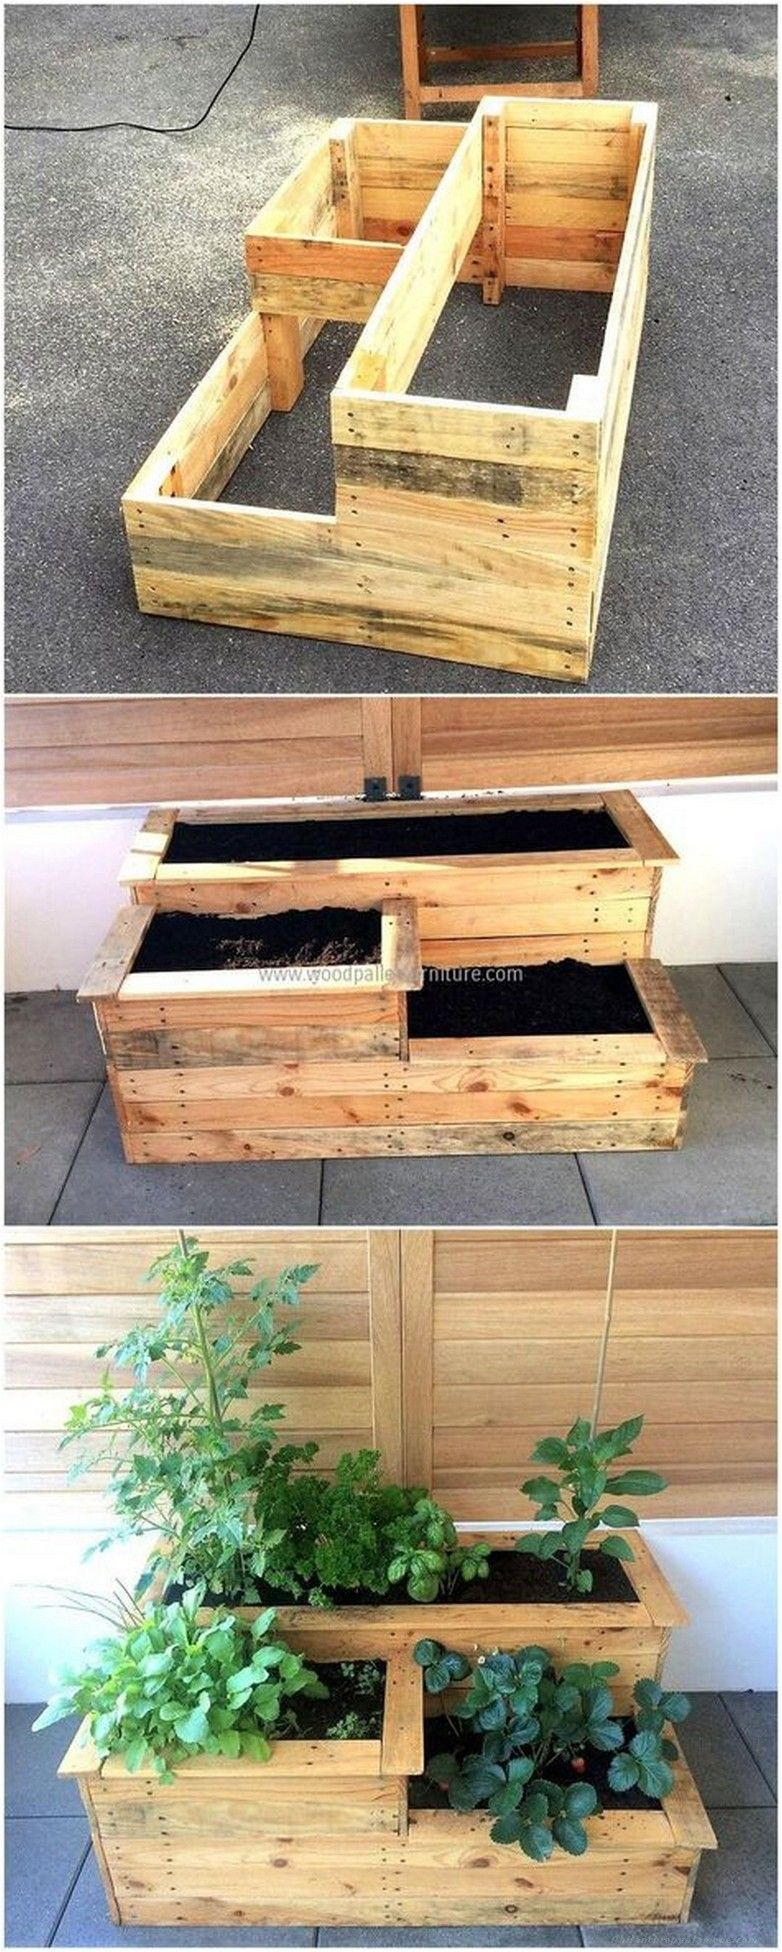 wood pallets furniture. 77 Easy And Smart Ways To Make Wood Pallet Furniture Ideas 54 - Home \u0026 Decor Pallets O